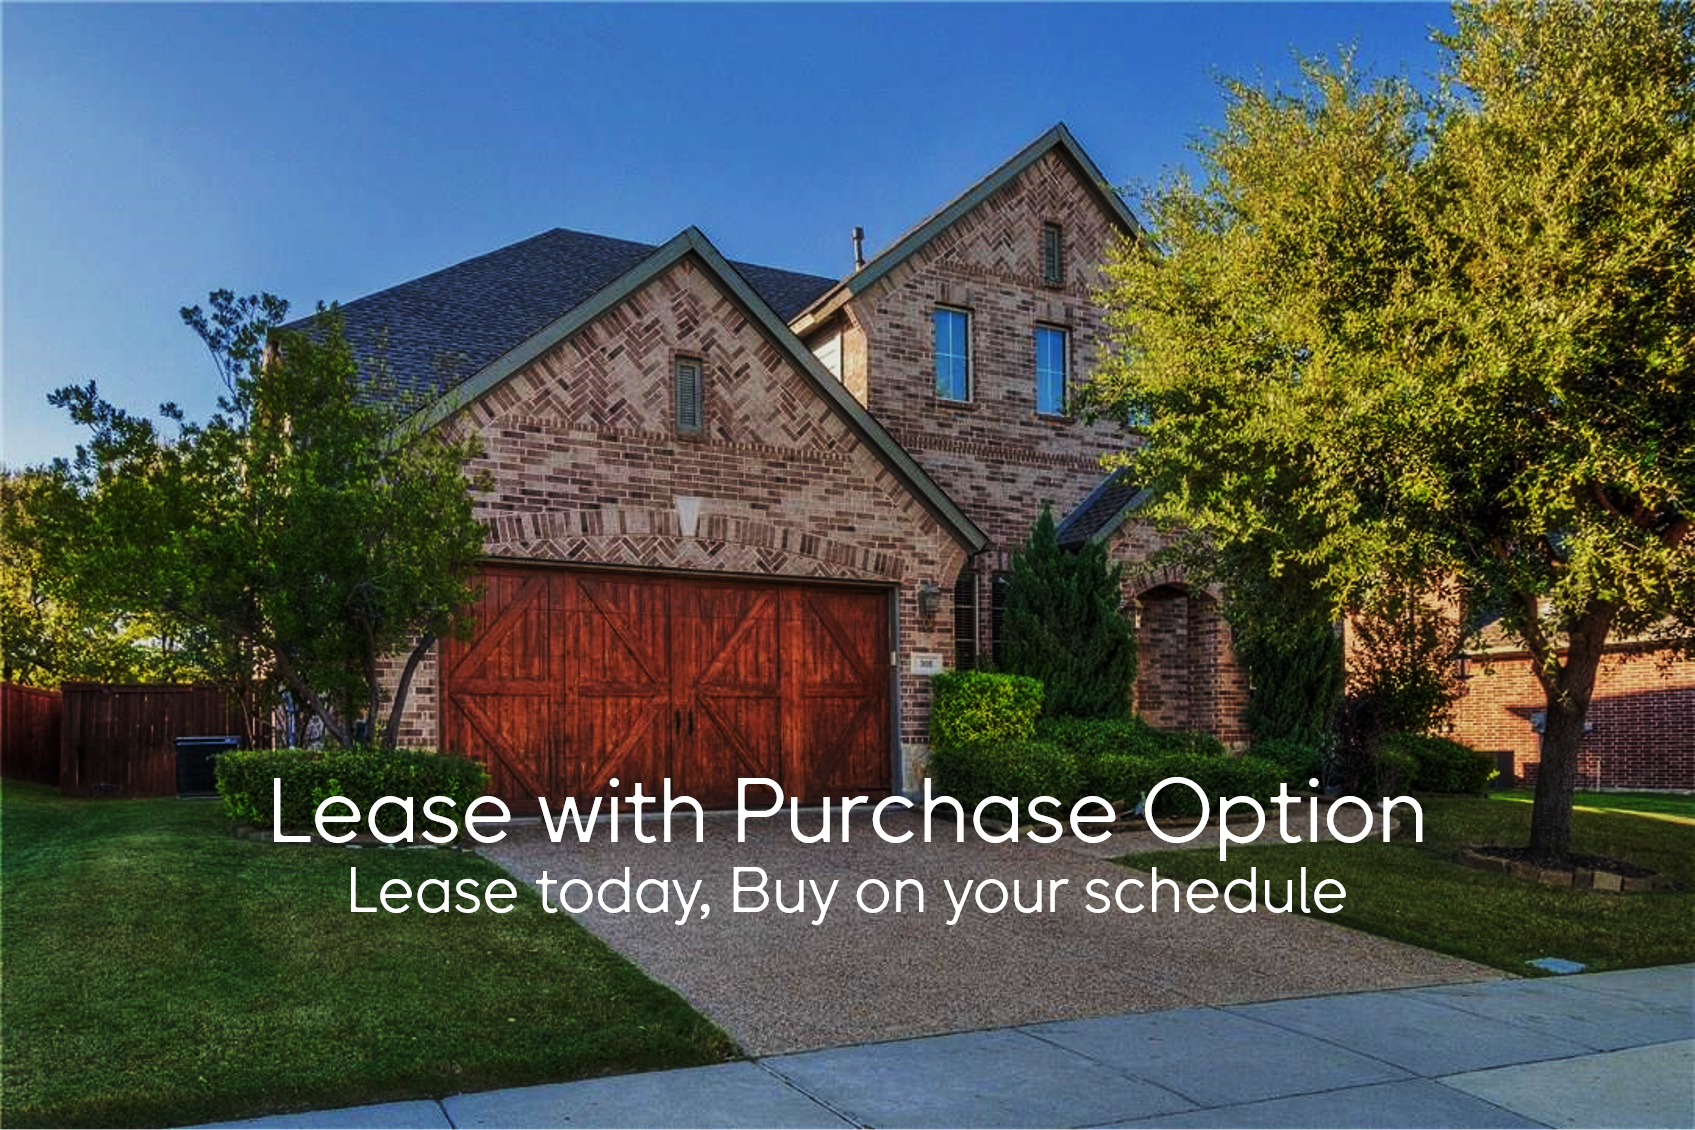 Lease with Purchase Option